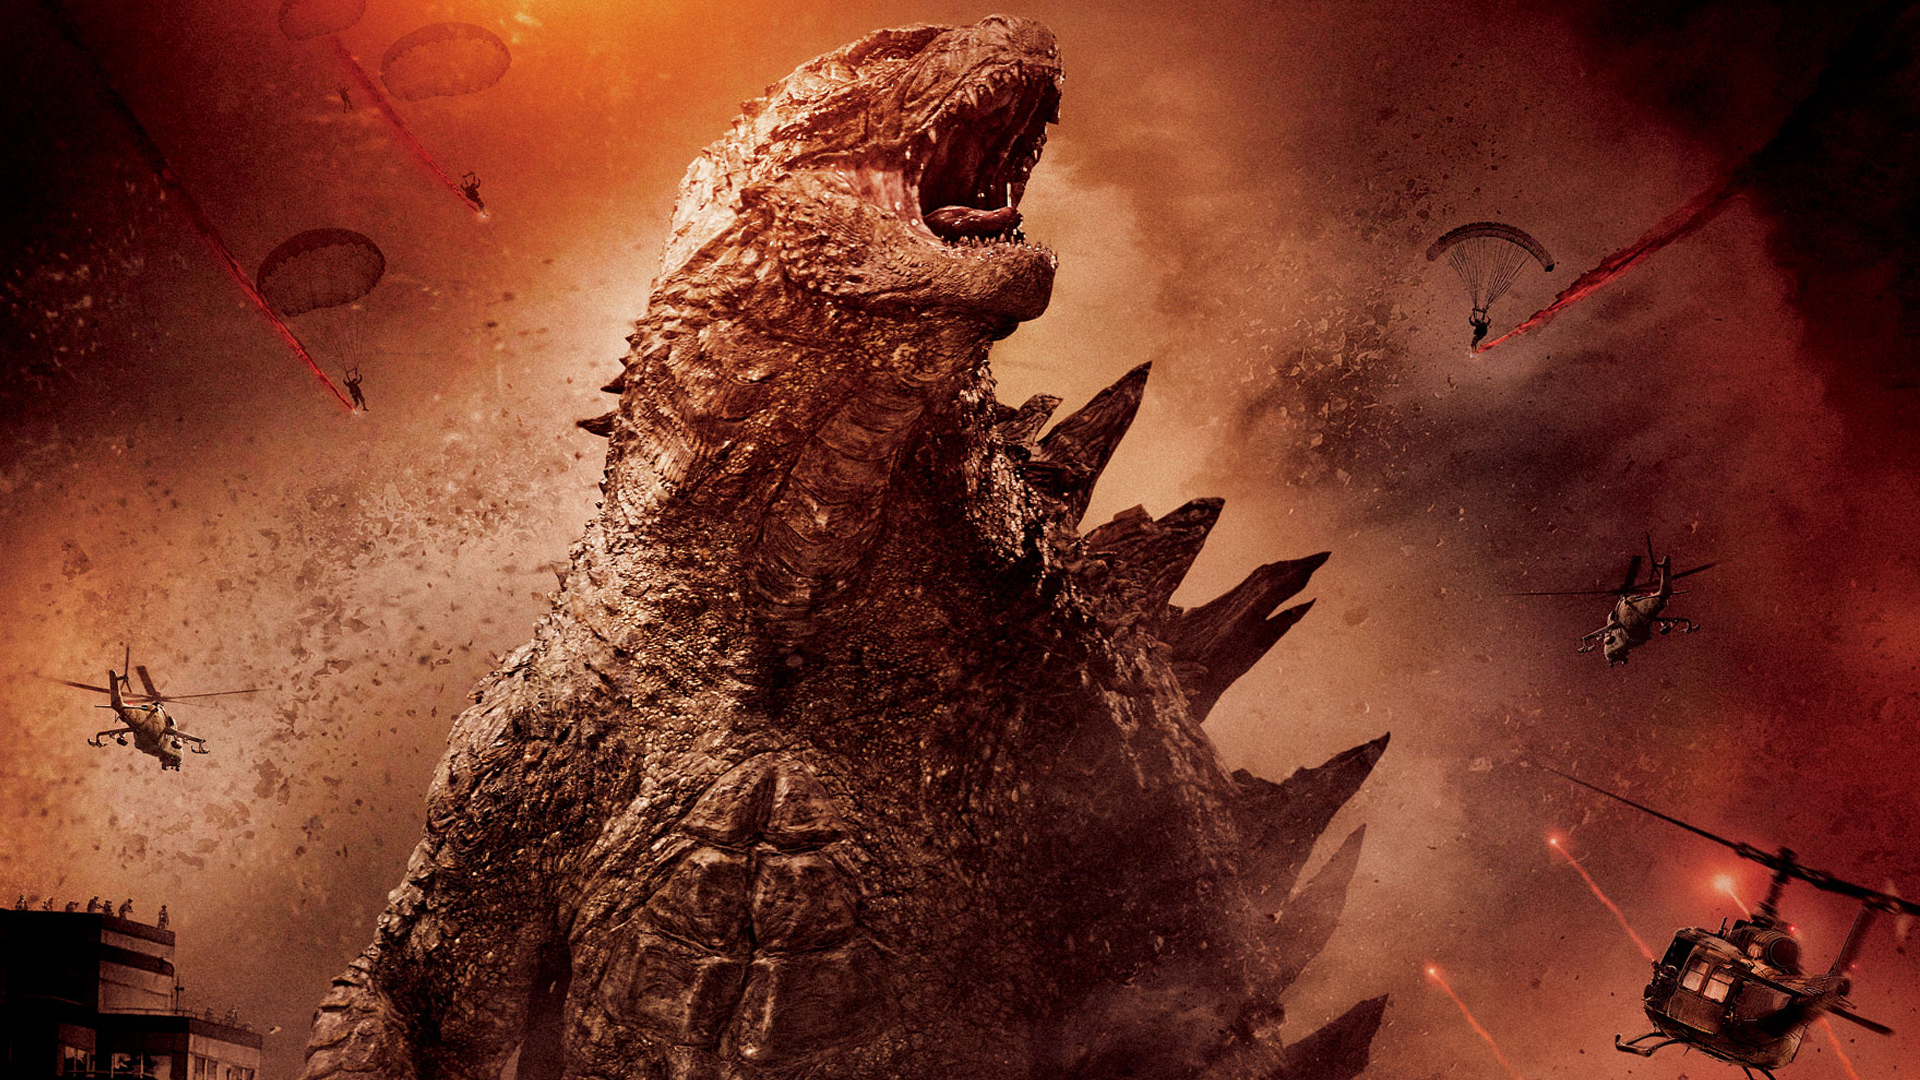 Godzilla Wallpaper Latest Hd Wallpapers 1920x1080